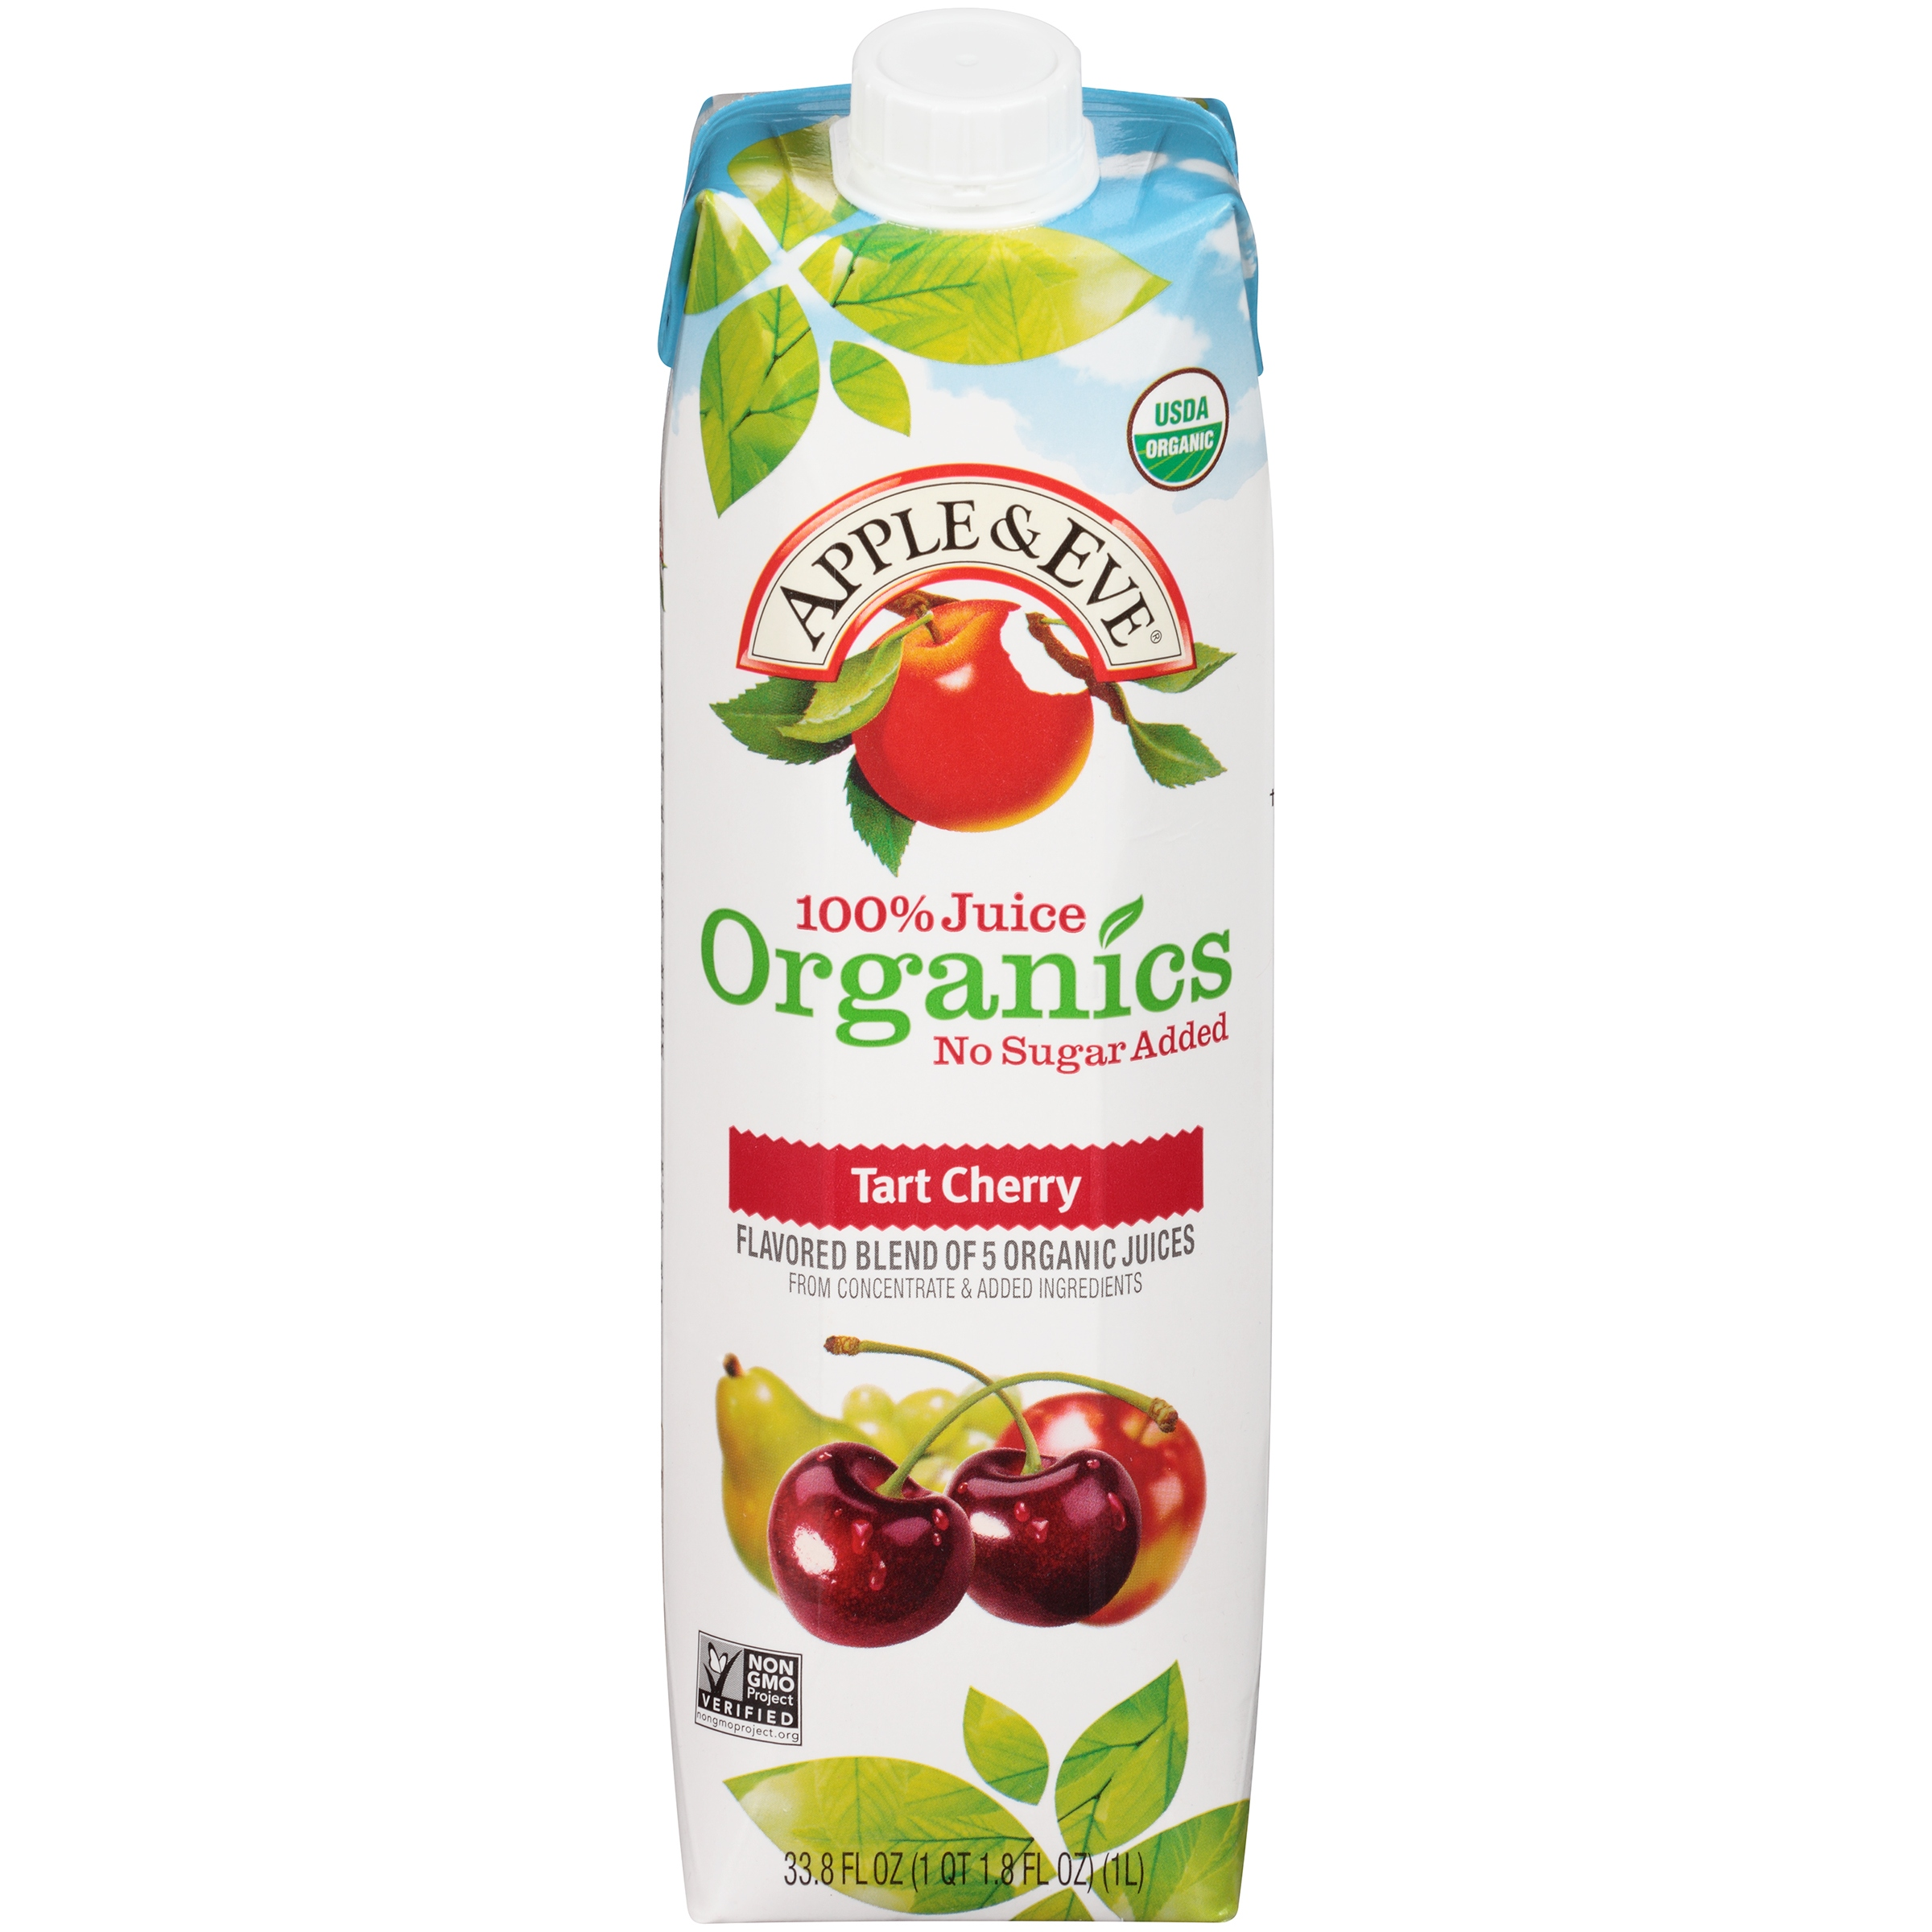 bdb4bf91f70 Apple   Eve® 100% Juice Organics Tart Cherry Juice 33.8 fl. oz. Carton -  Walmart.com